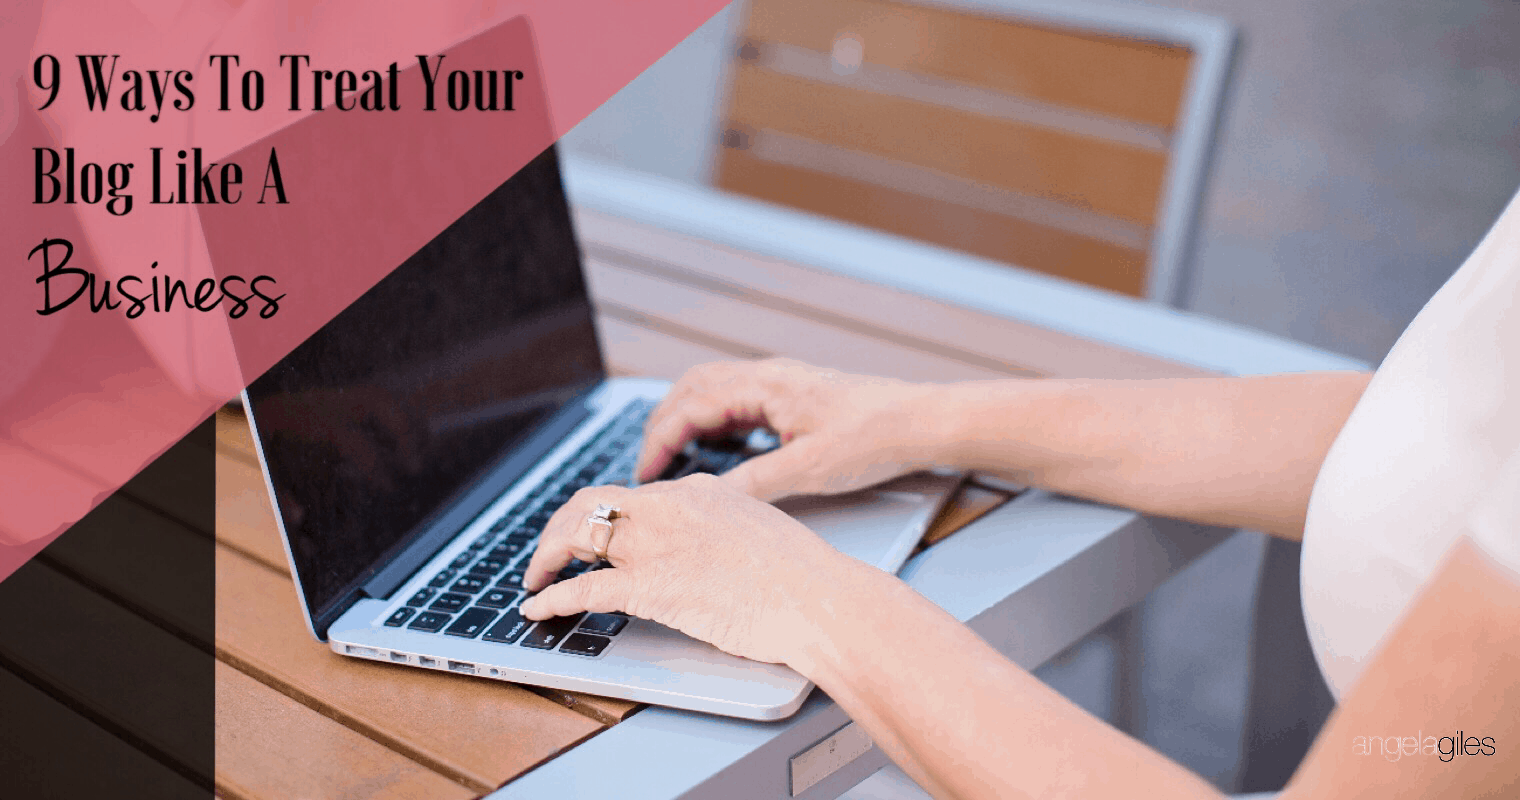 9 Ways To Treat Your Blog Like A Business